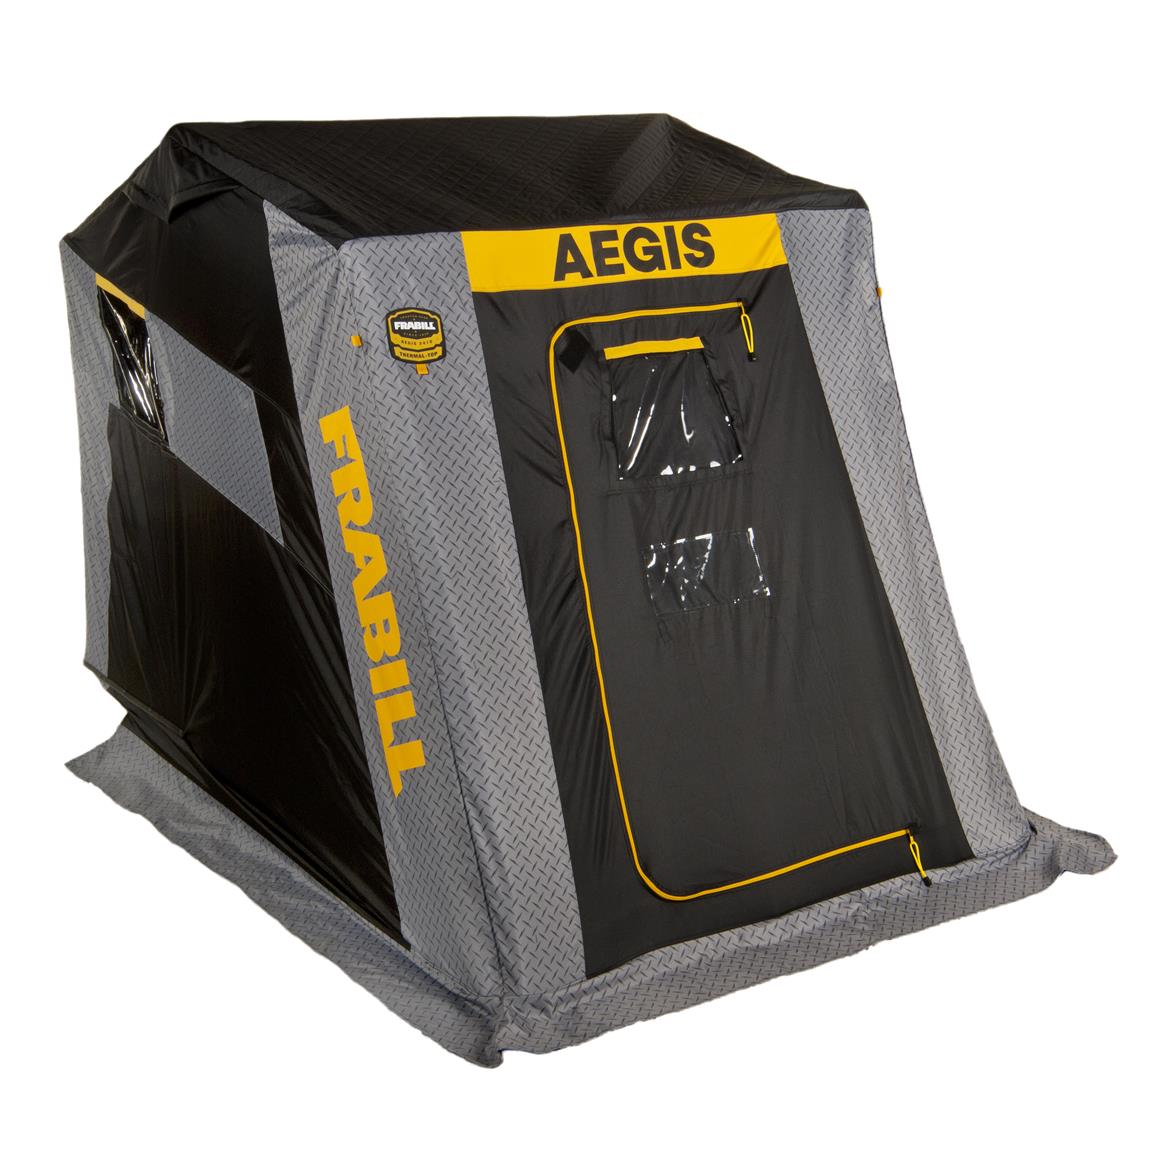 Frabill Aegis 2250 Ice Shelter, Insulated, Flip Over, 2 Person